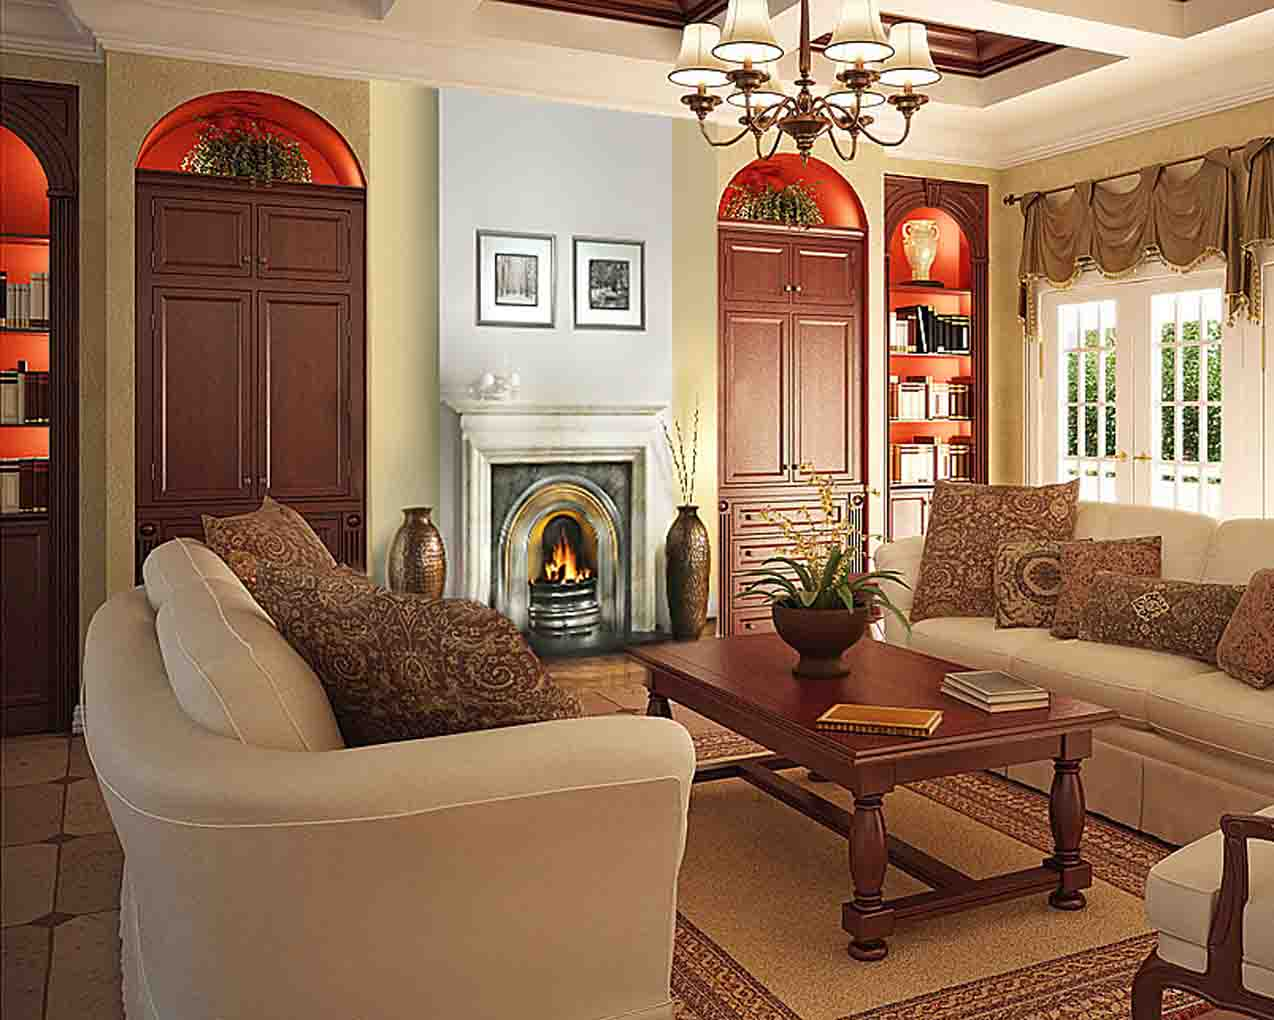 Very small living room ideas pictures4 small room for Very small living room ideas